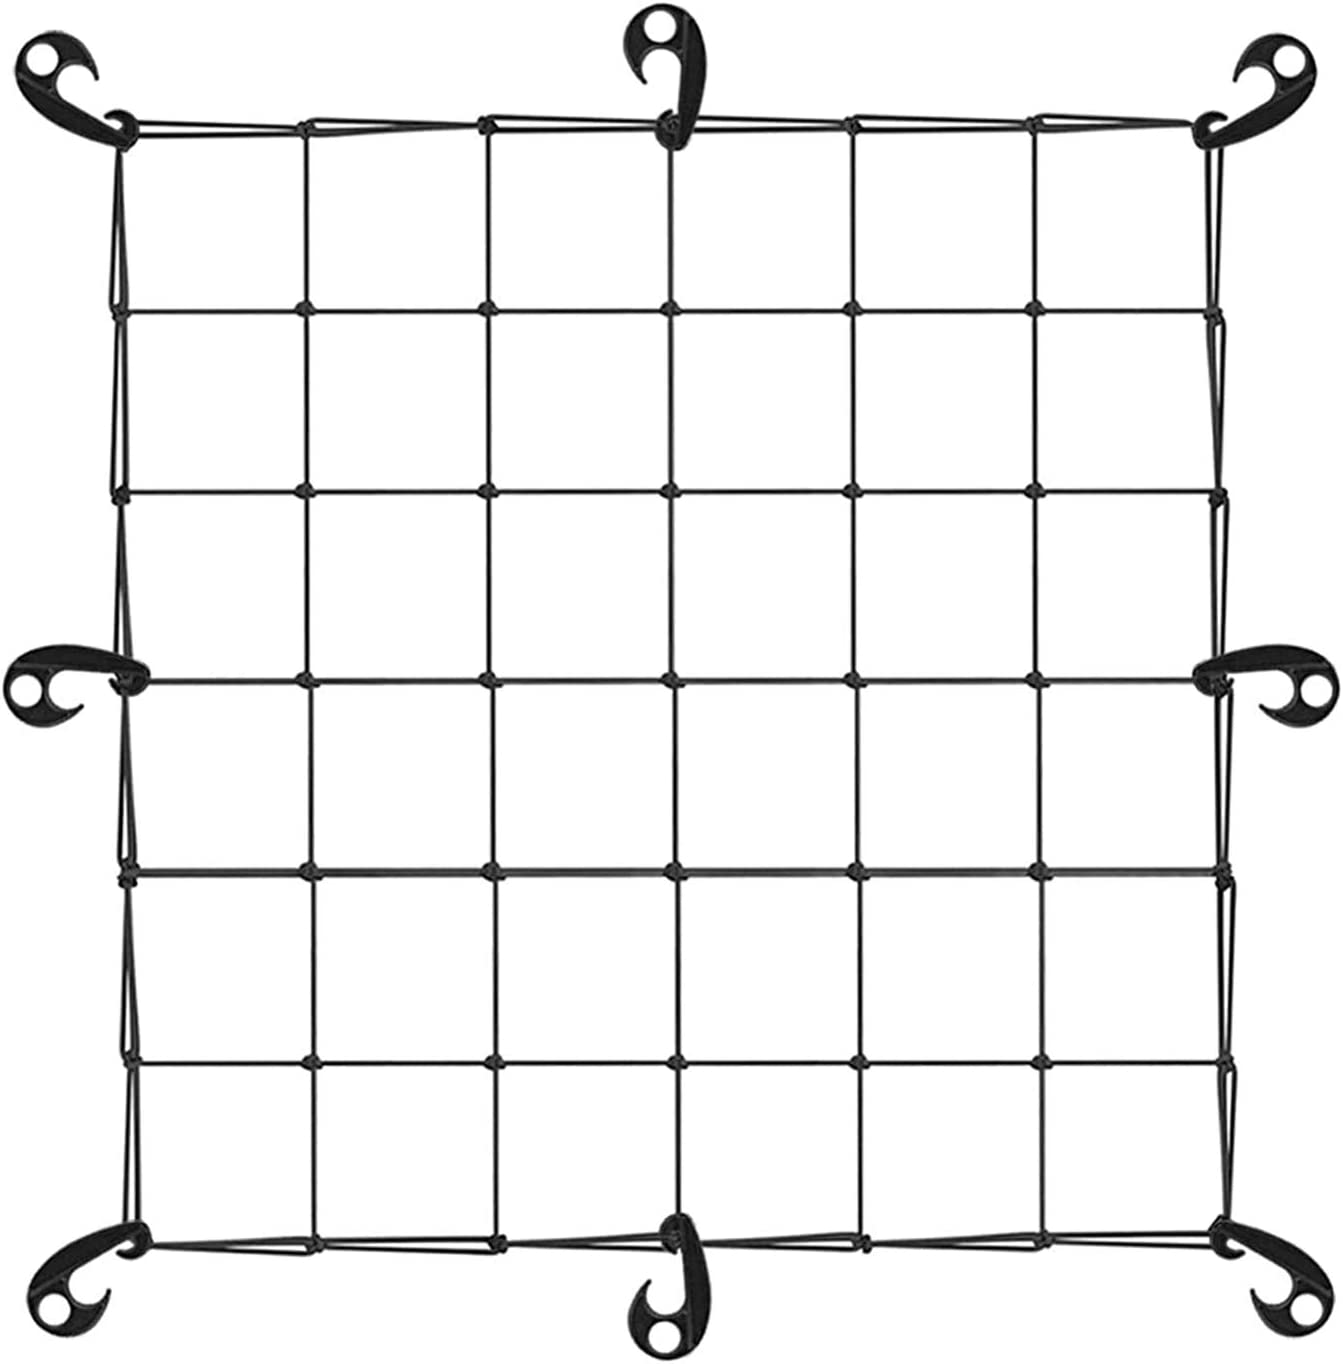 SAHLA 2 Packs Elastic Trellis Limited Special Price Netting Net Hooks Tent with Grow excellence